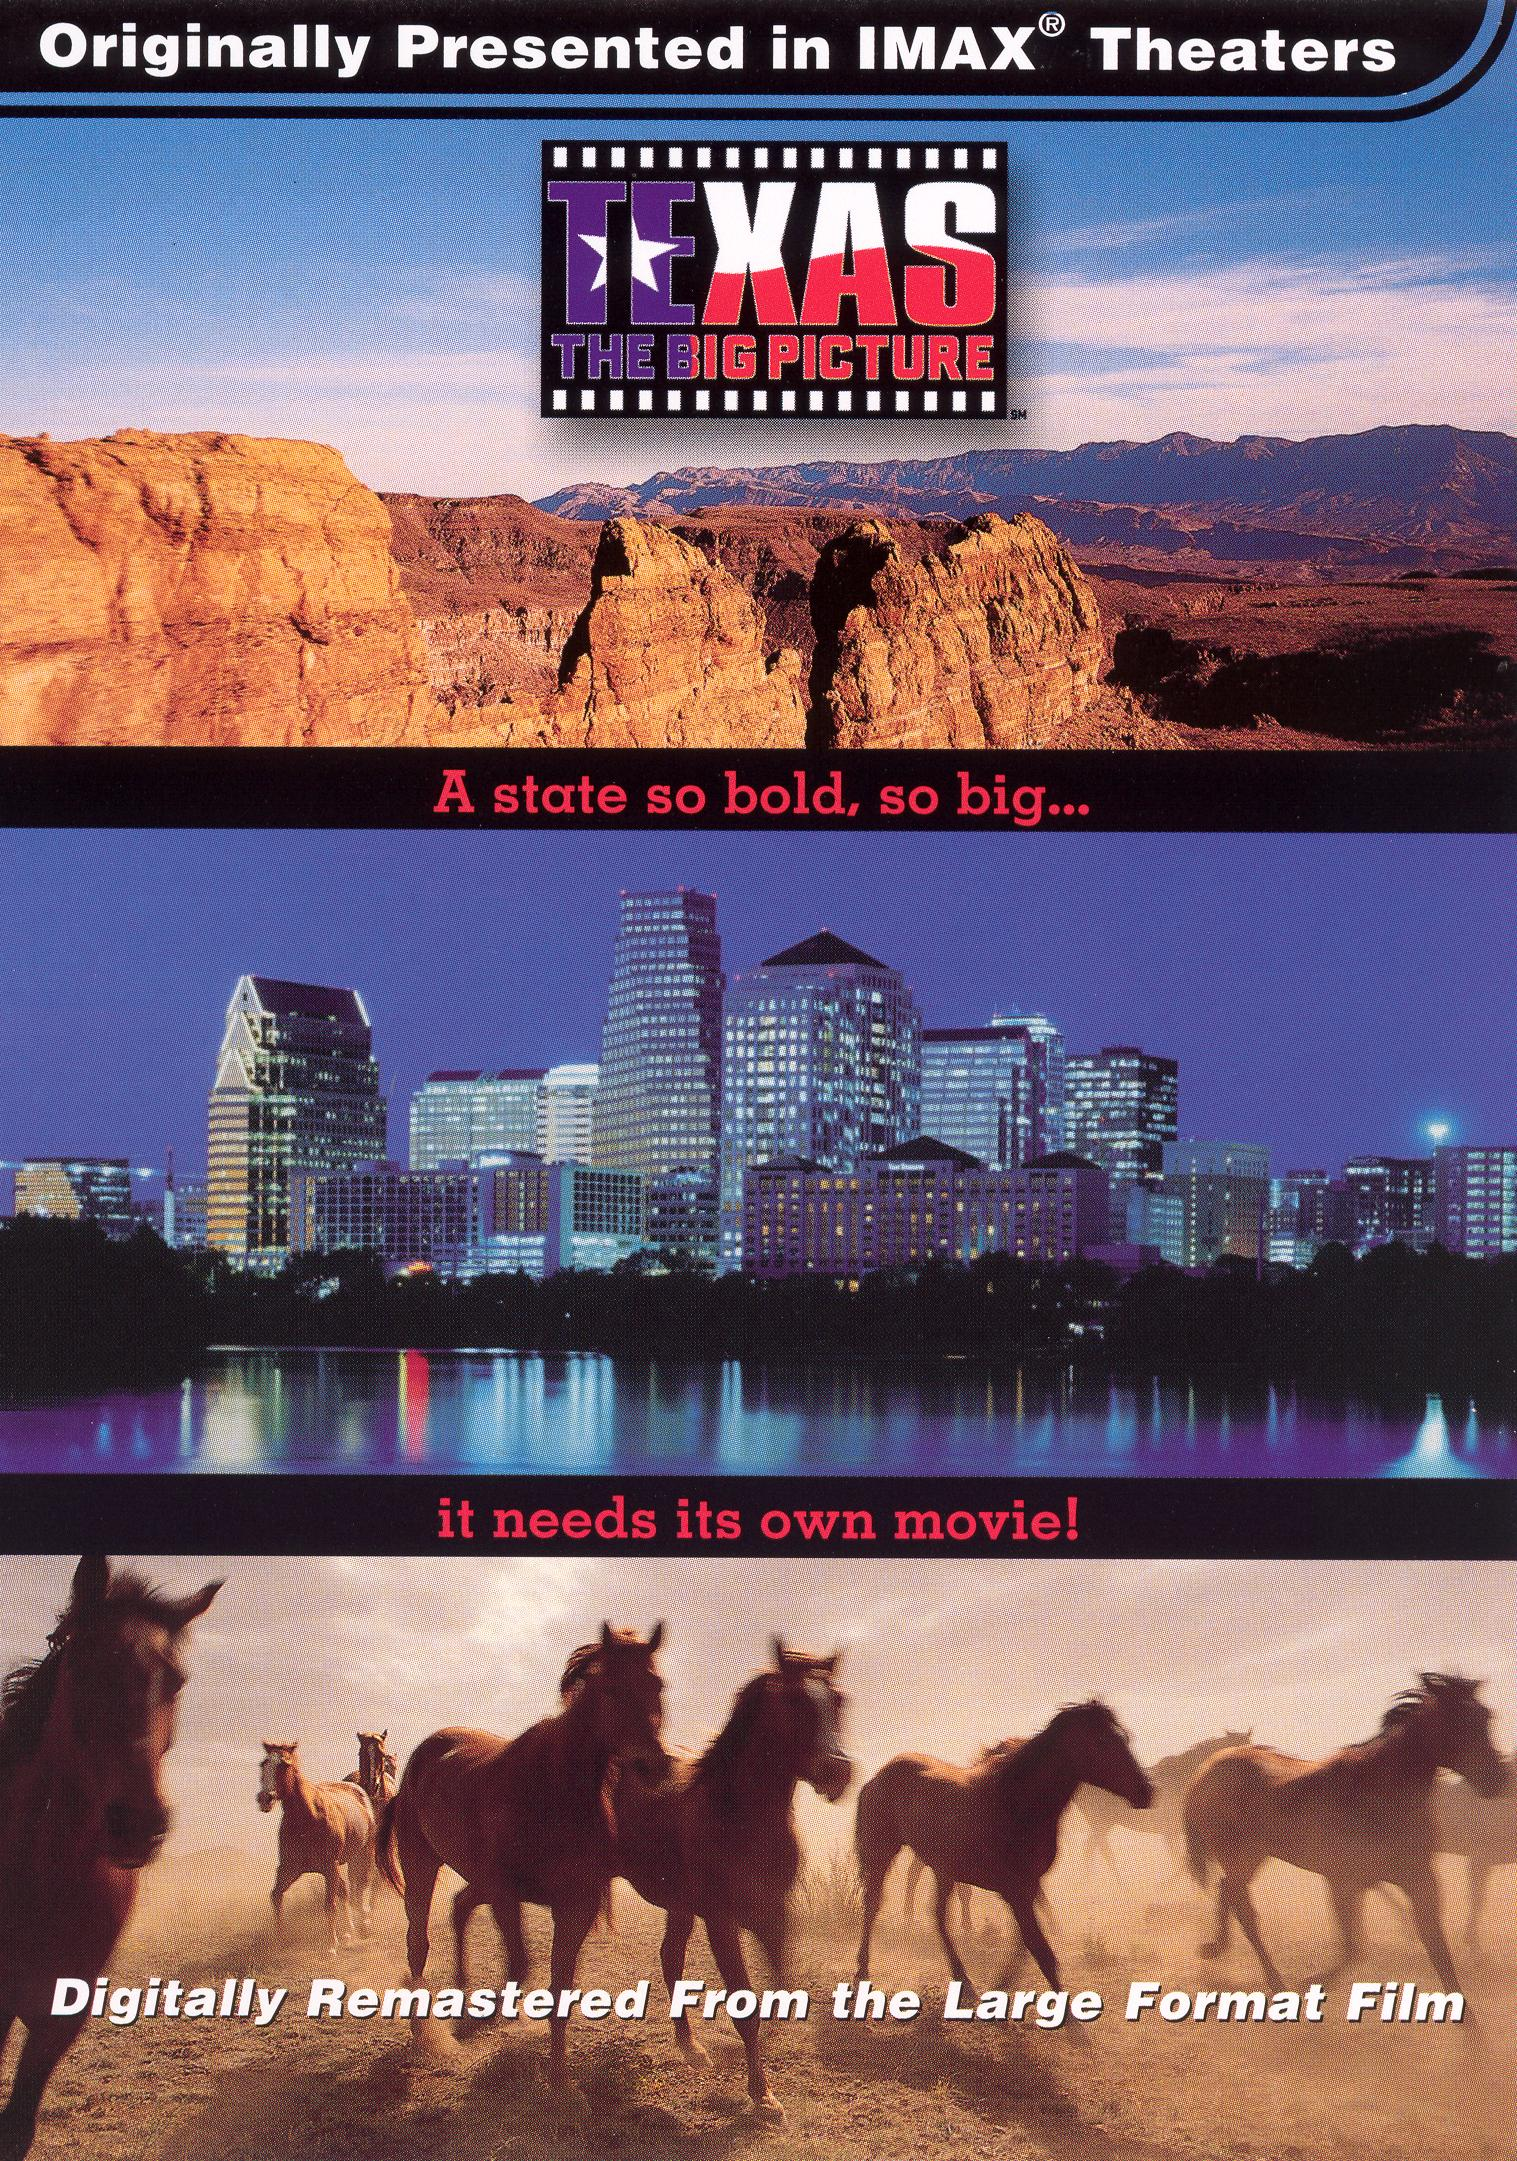 Texas: The Big Picture